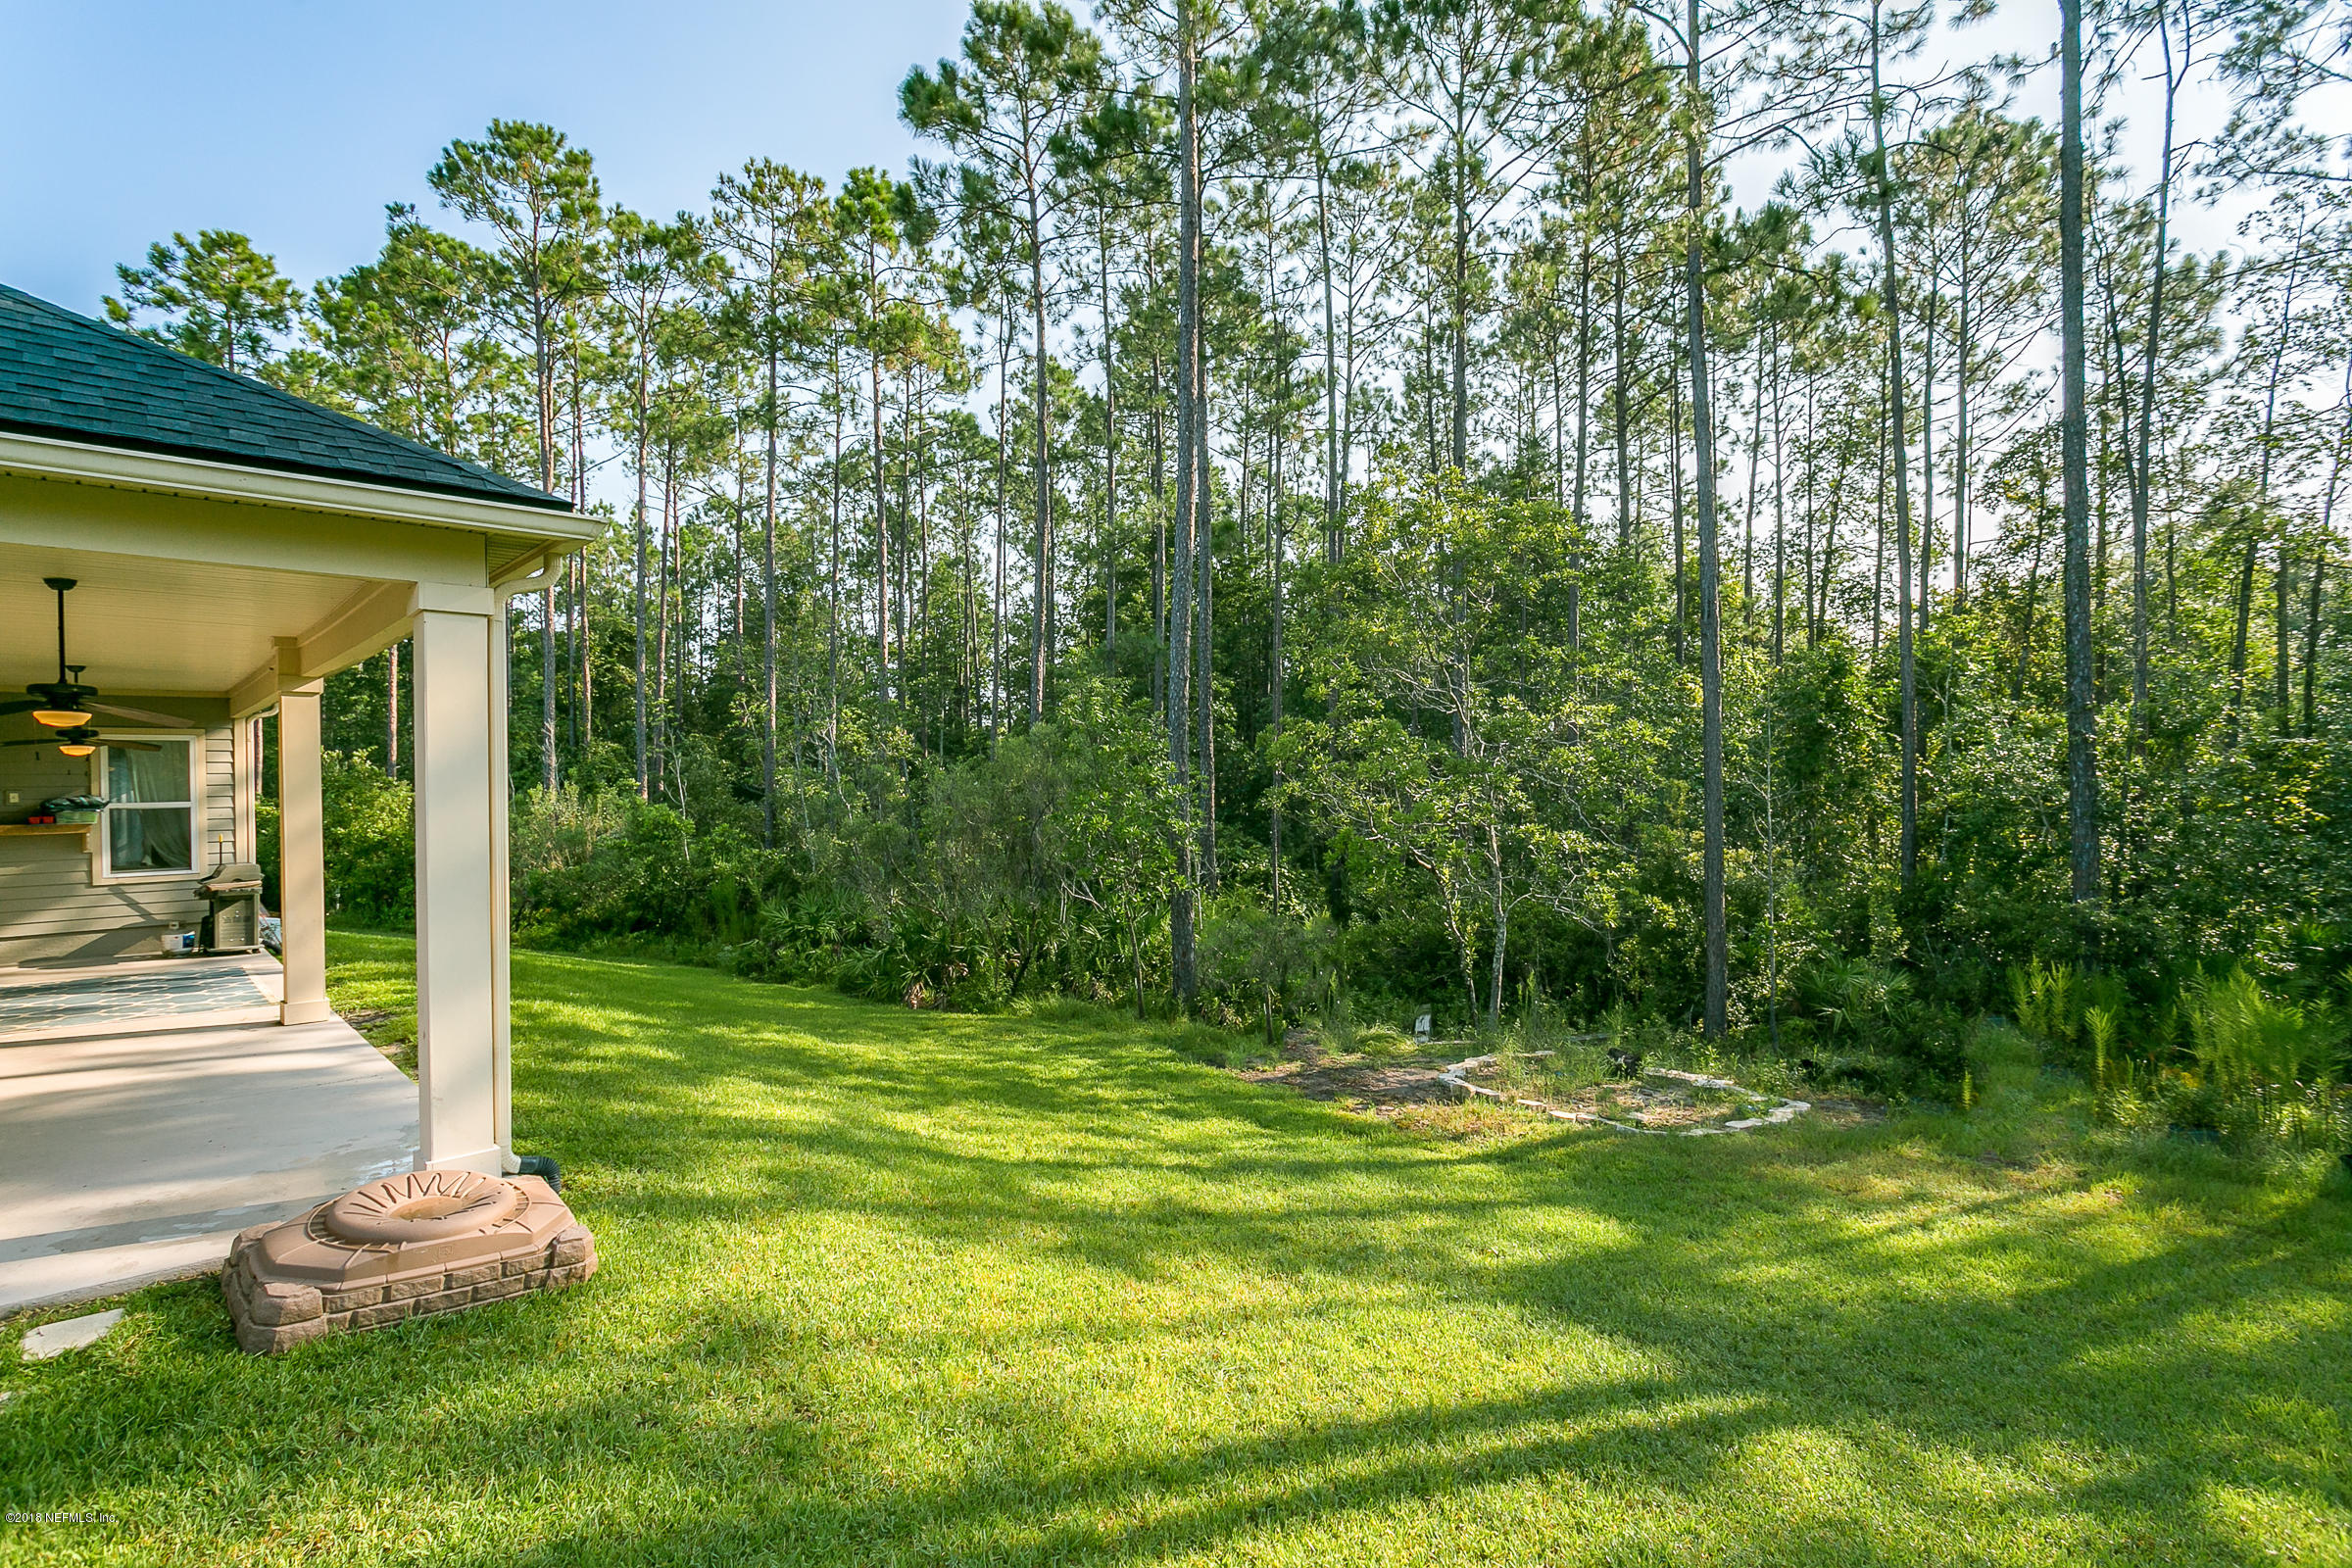 1371 COOPERS HAWK, MIDDLEBURG, FLORIDA 32068, 5 Bedrooms Bedrooms, ,3 BathroomsBathrooms,Residential - single family,For sale,COOPERS HAWK,953523